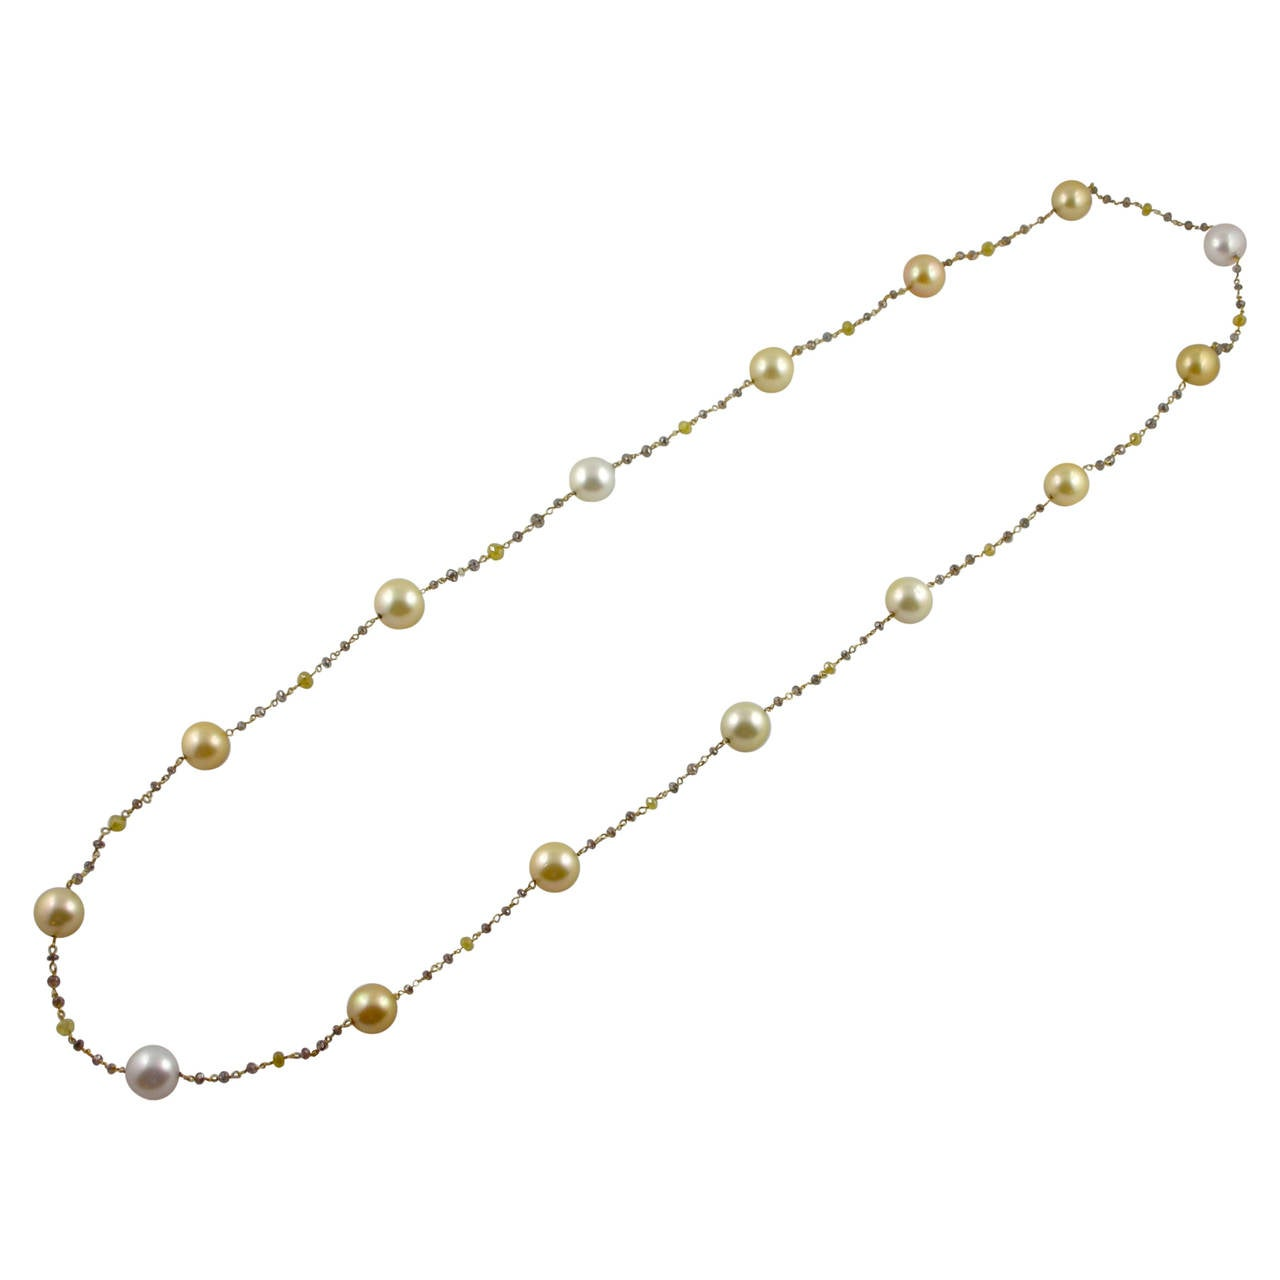 Jona South Sea Pearl Briolette Cut Diamond Sautoir 18k Yellow Gold Necklace